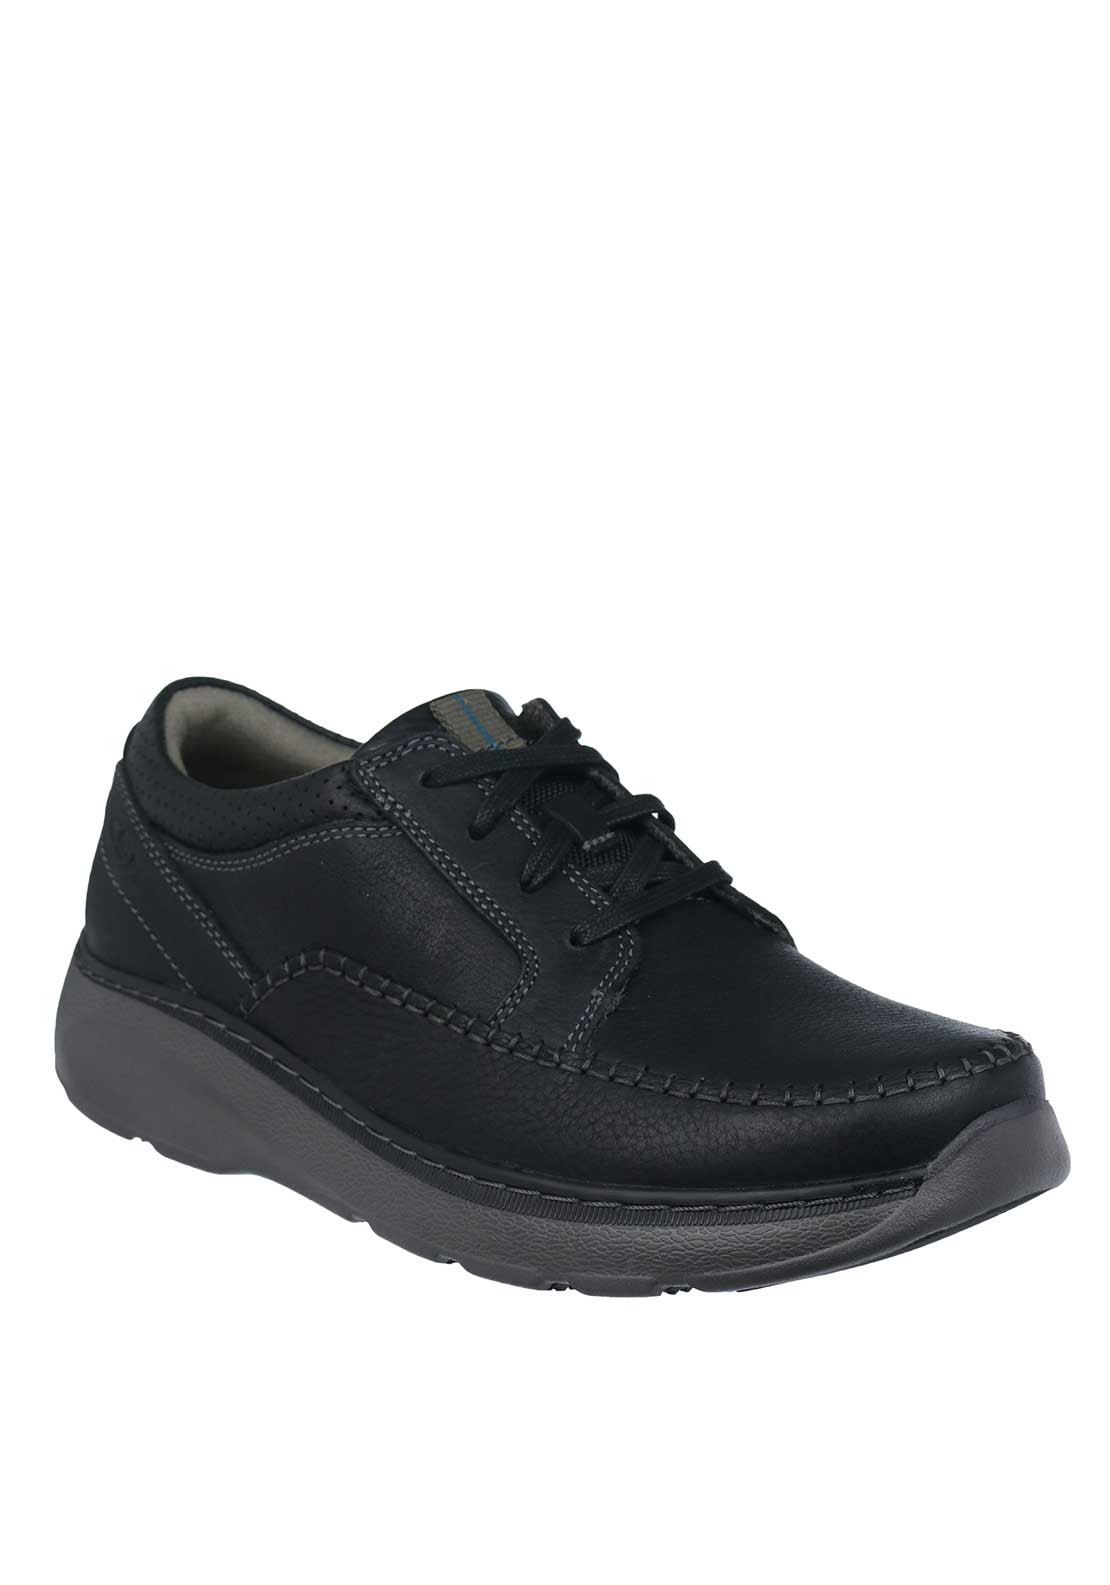 Clarks Mens Charton Vibe Lace Up Leather Comfort Shoe, Black